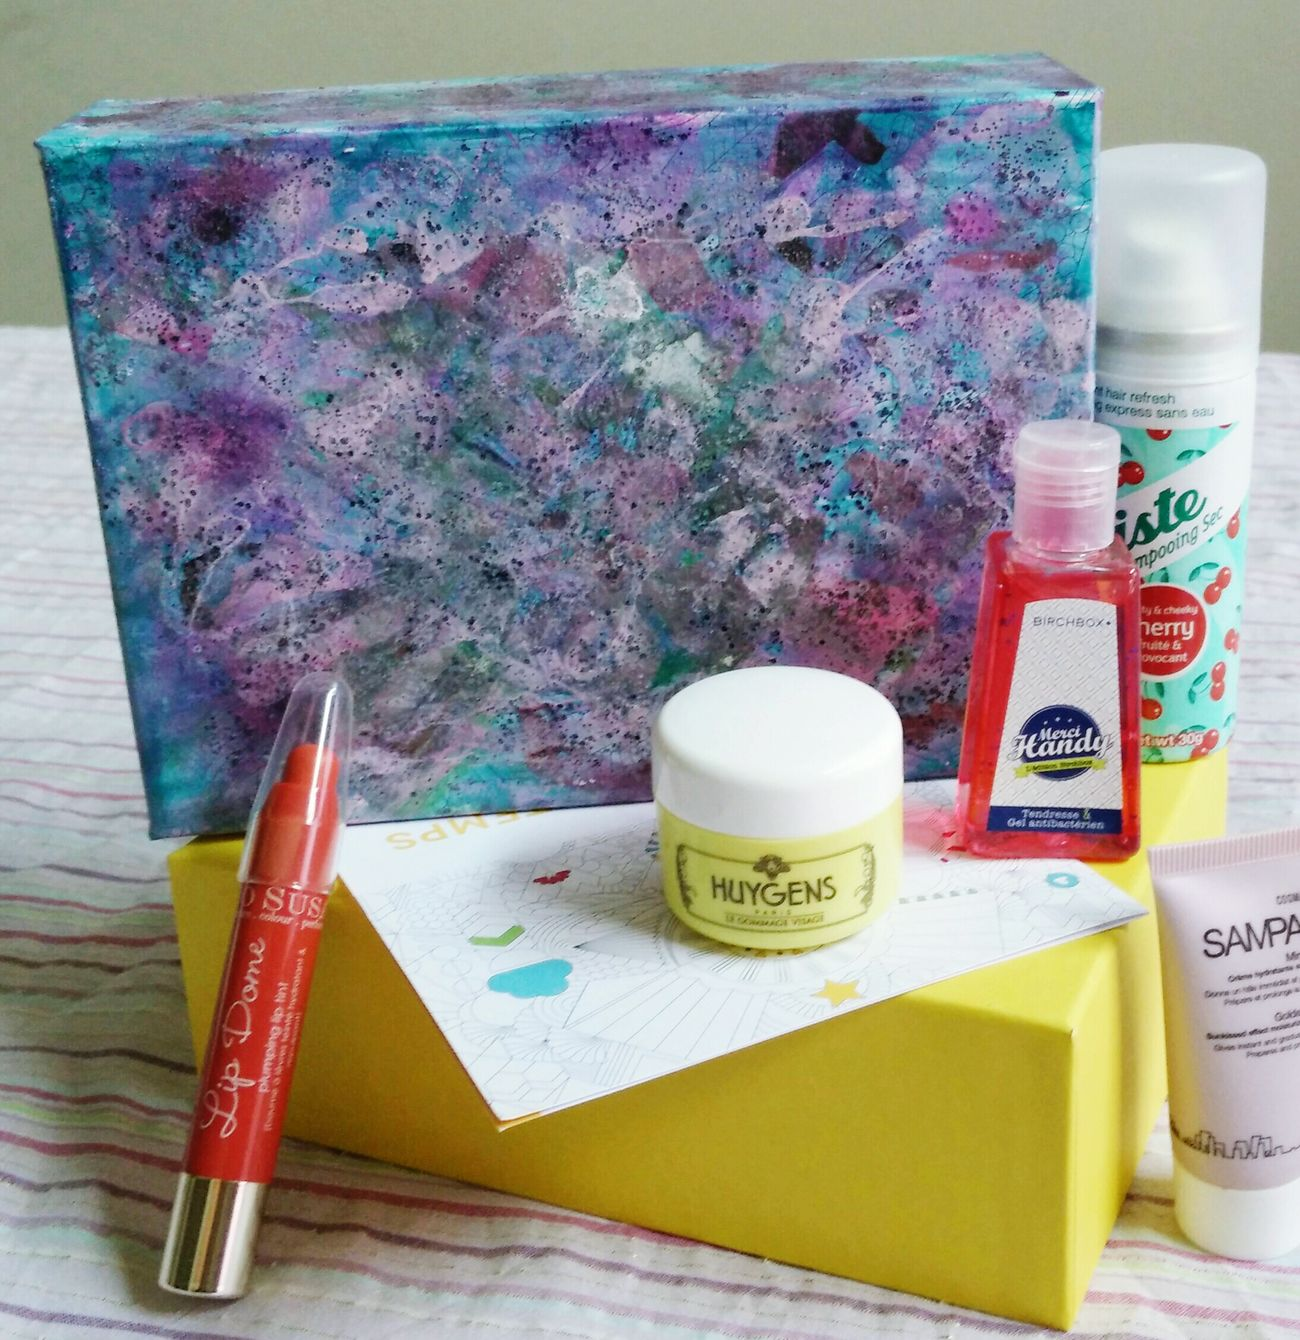 Box Birchbox Springtime Skincare Makeup Enjoying Life